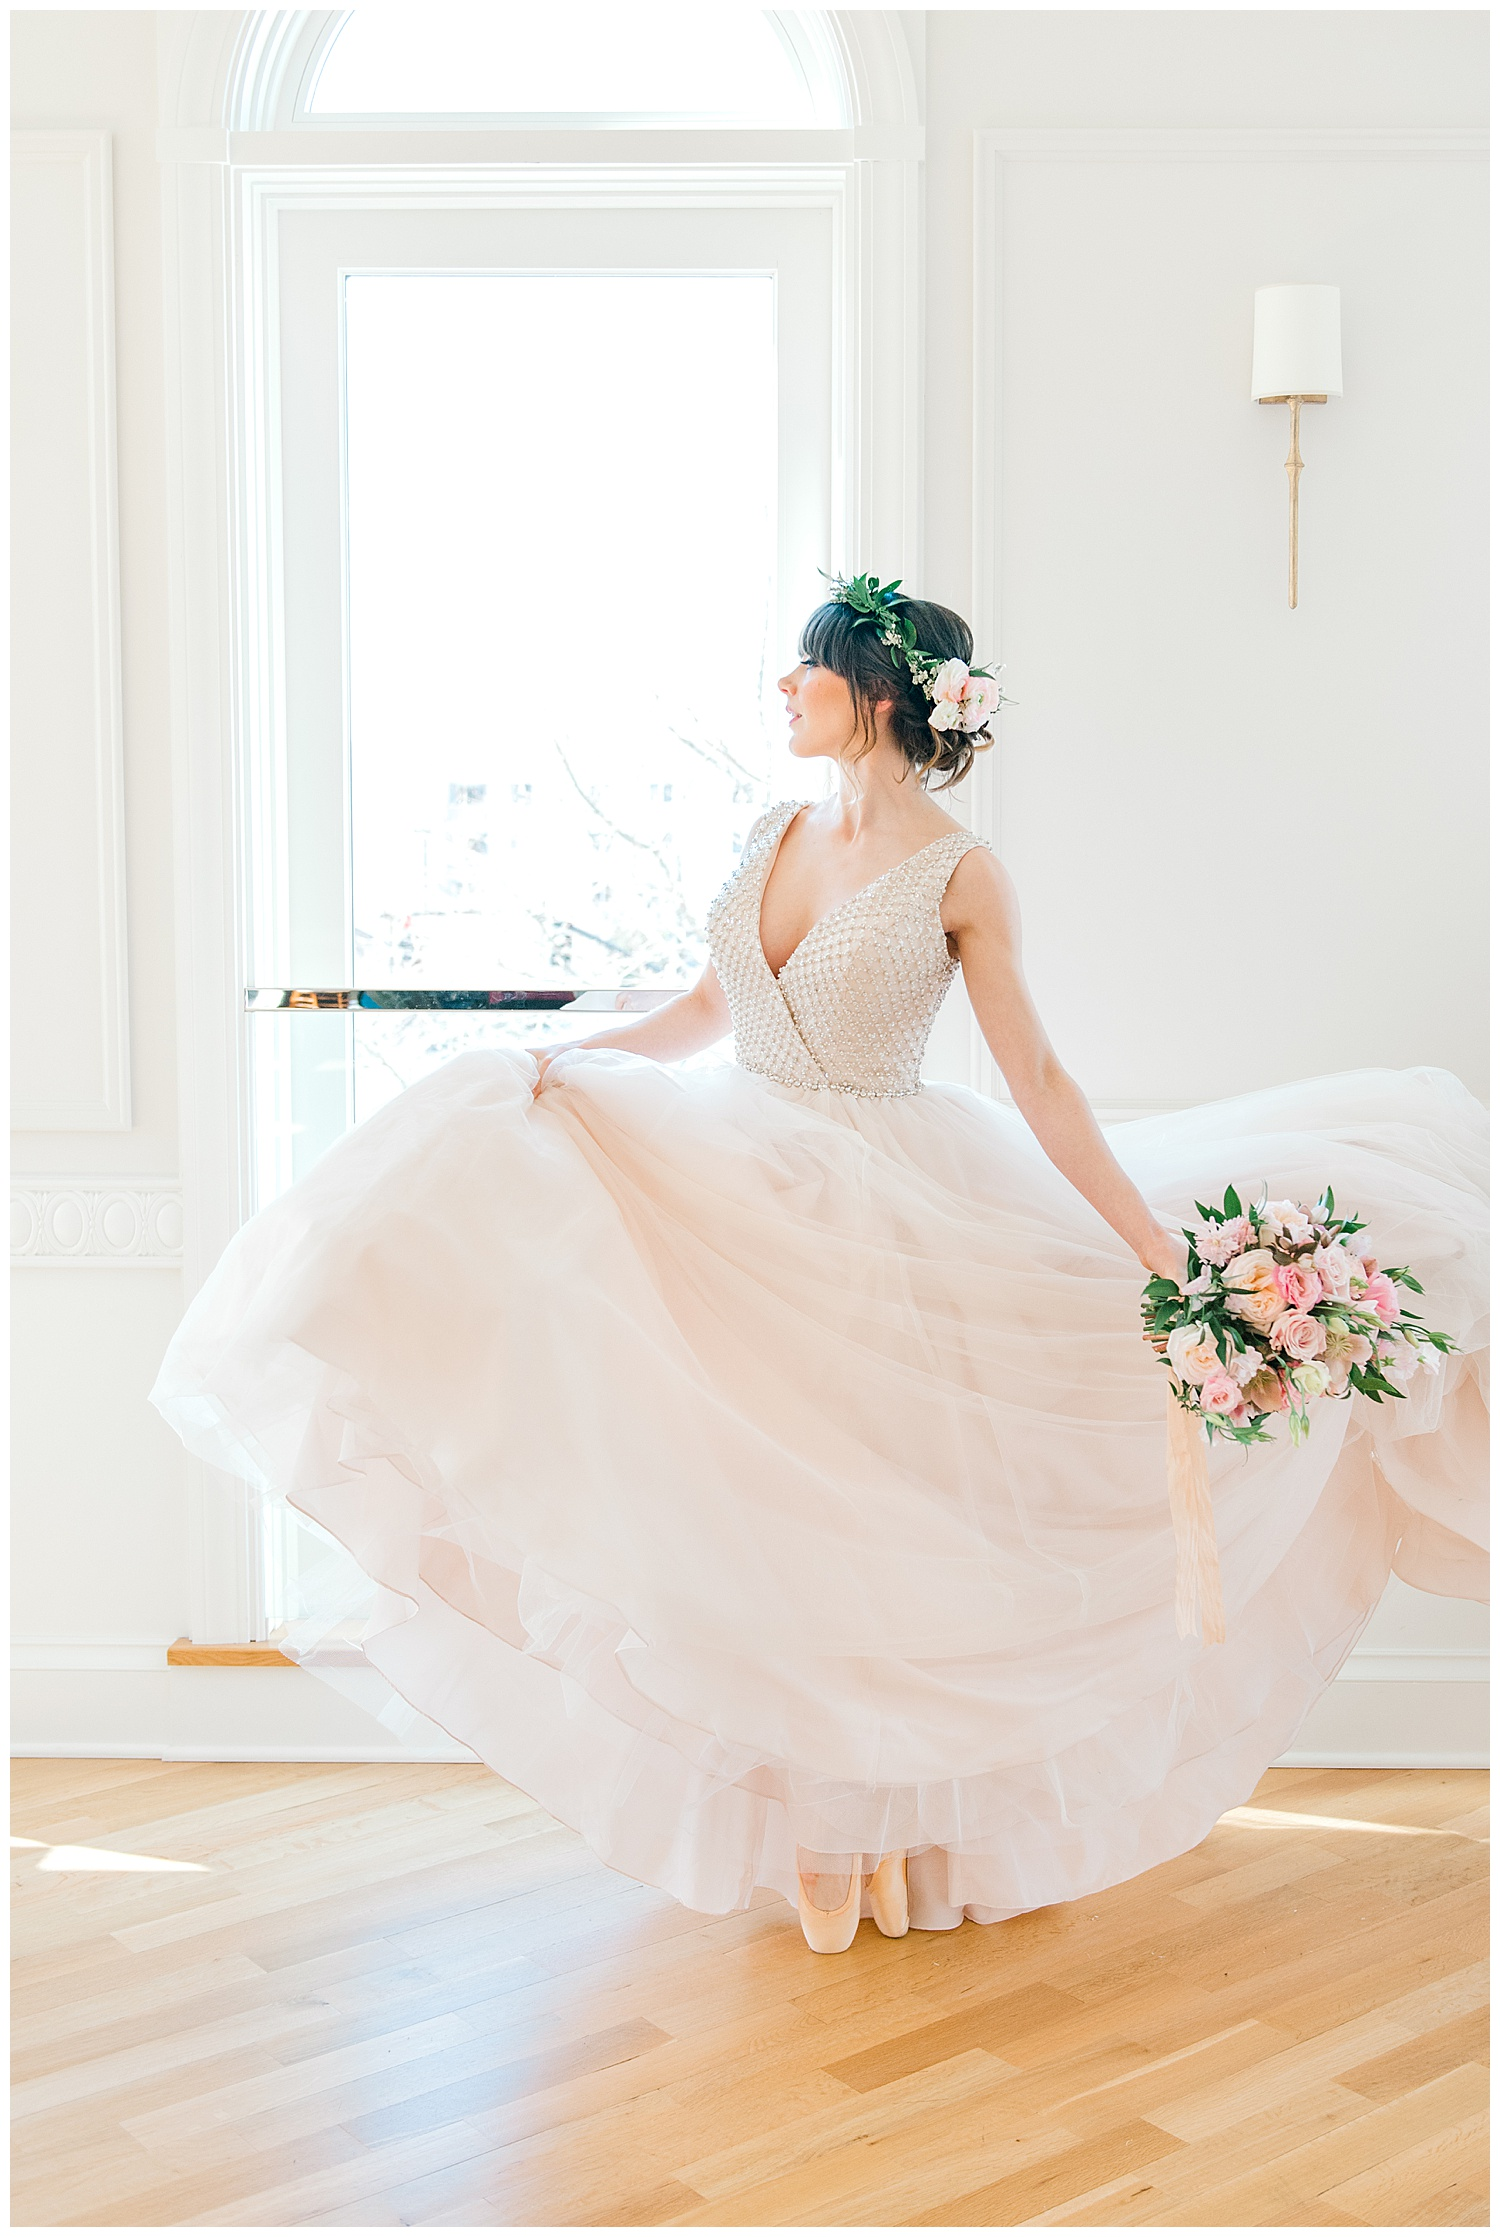 blush-ballerina-wedding-photography-newport-rhode-island-41.jpg